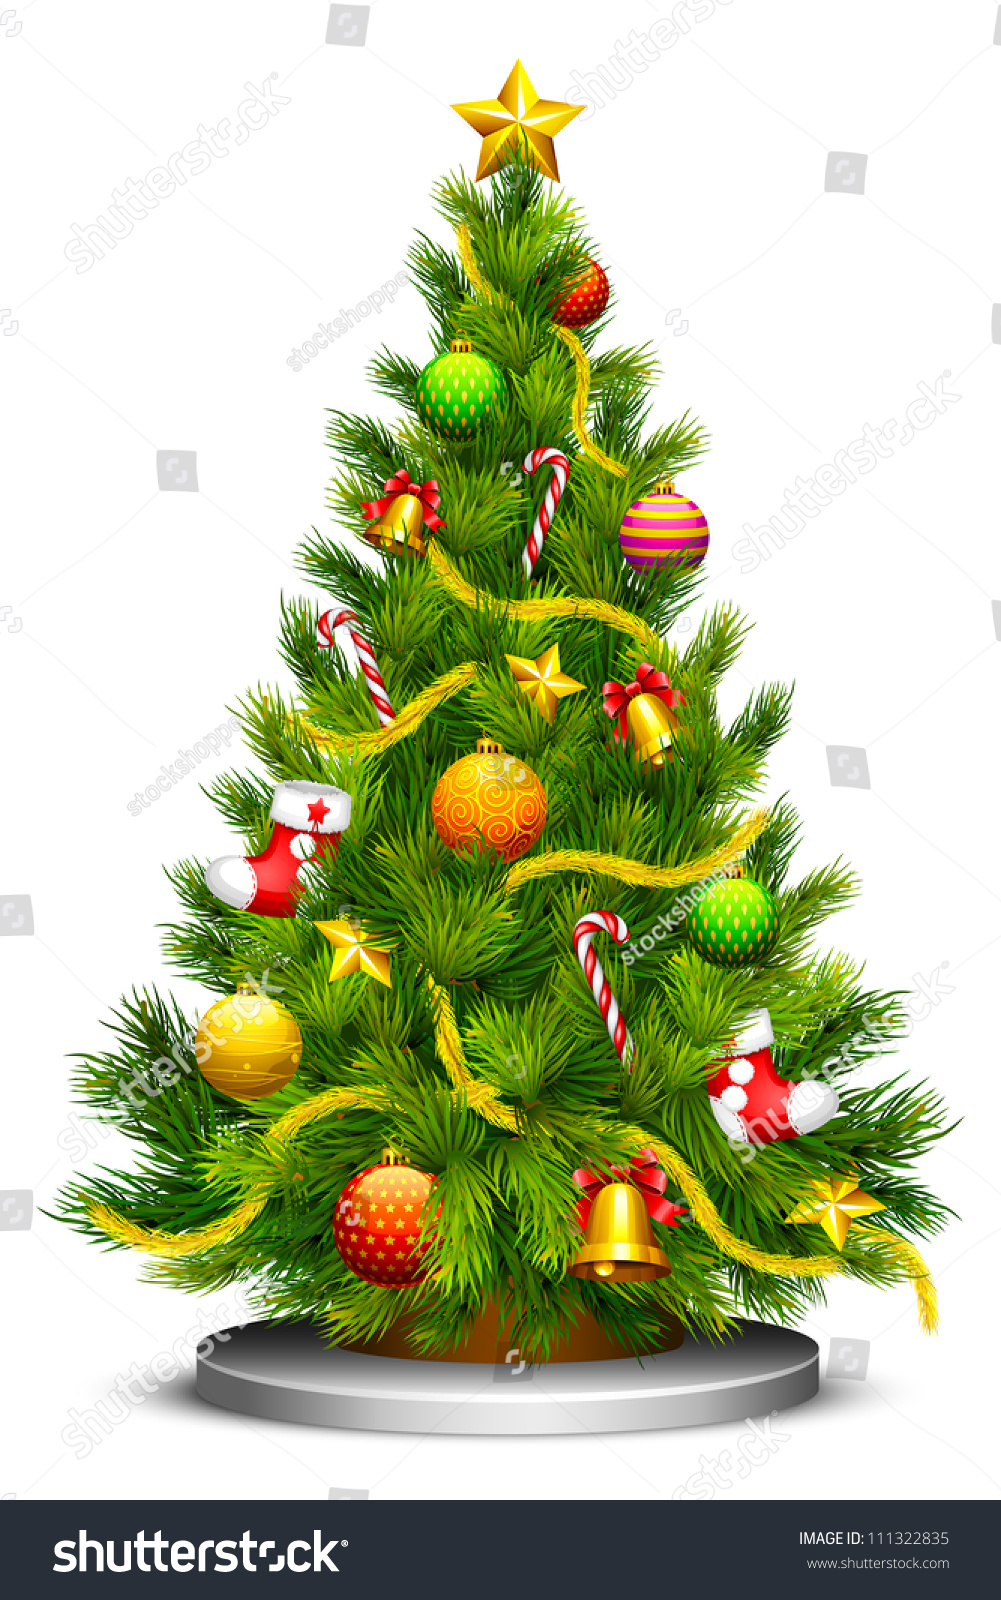 Vector Illustration Of Decorated Christmas Tree - 111322835